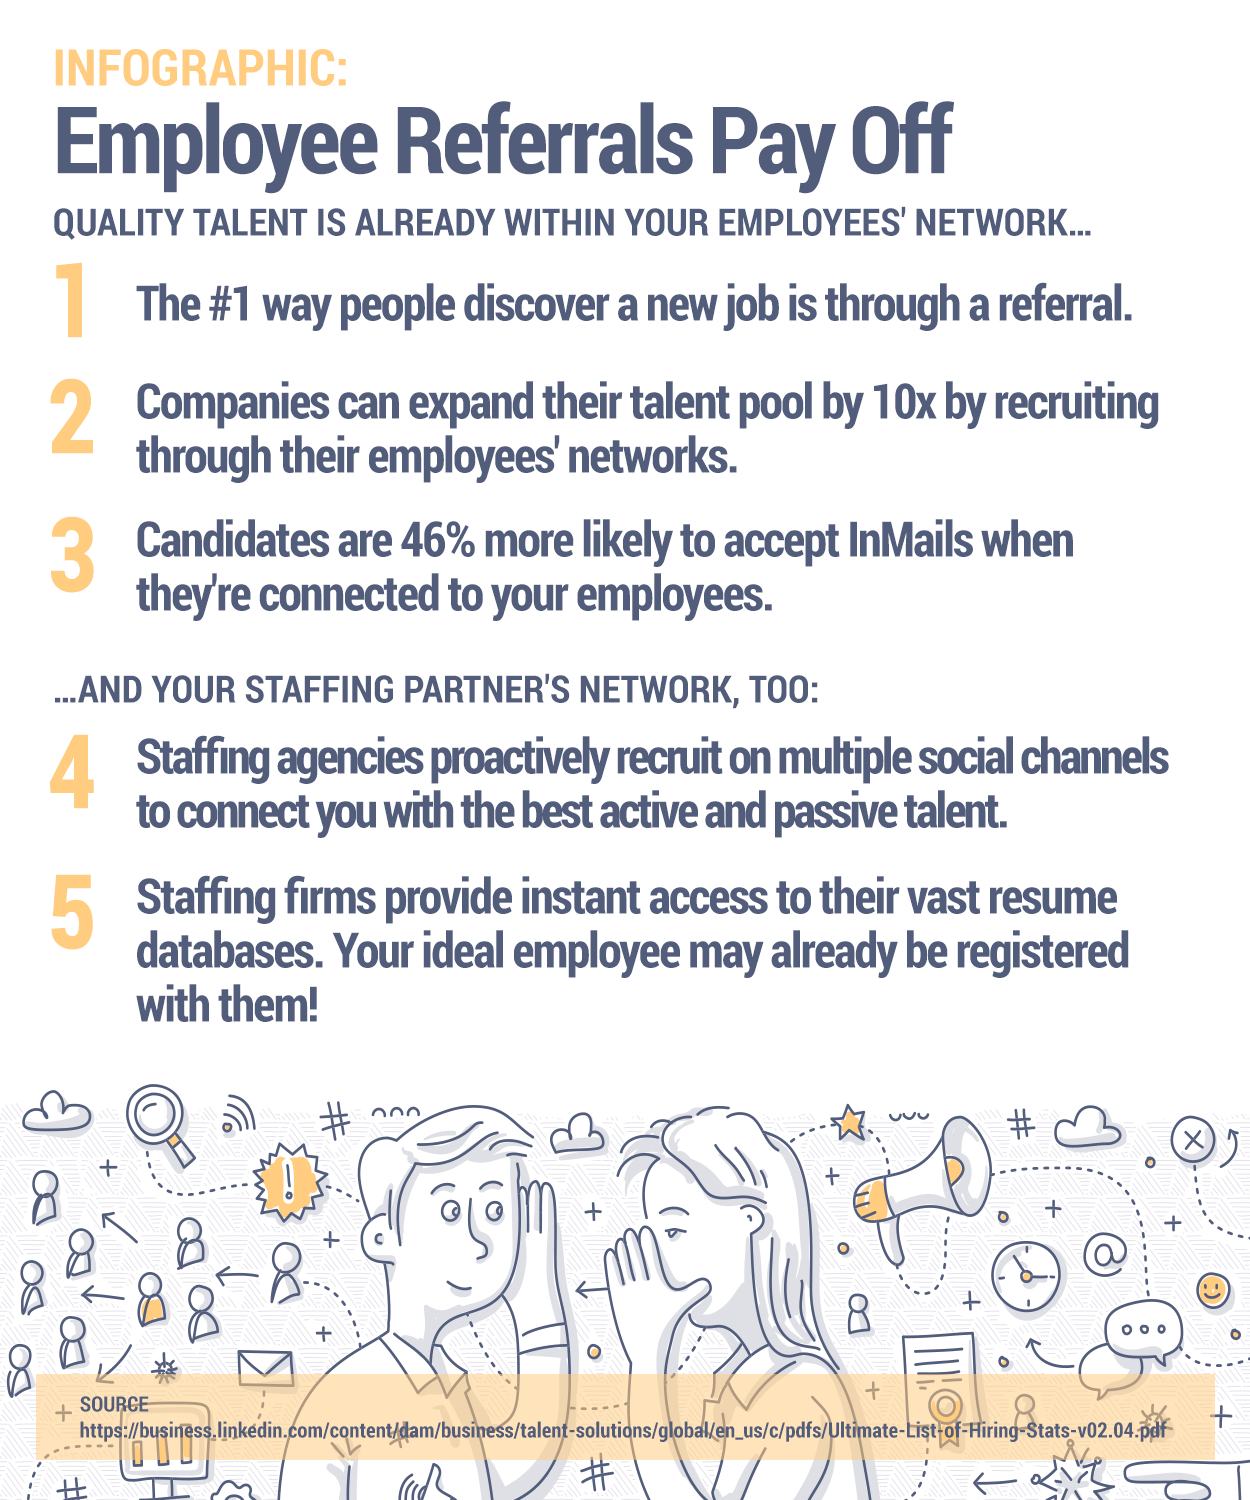 Employee Referrals Pay Off